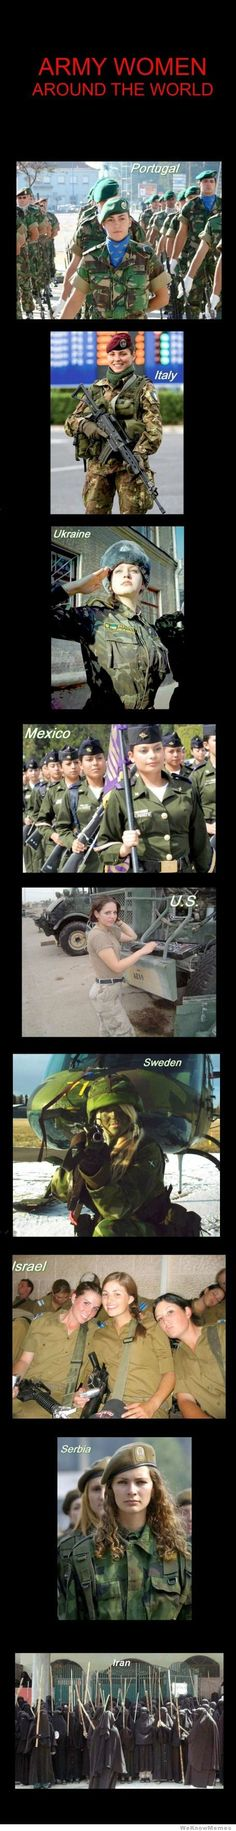 Army women from around the world